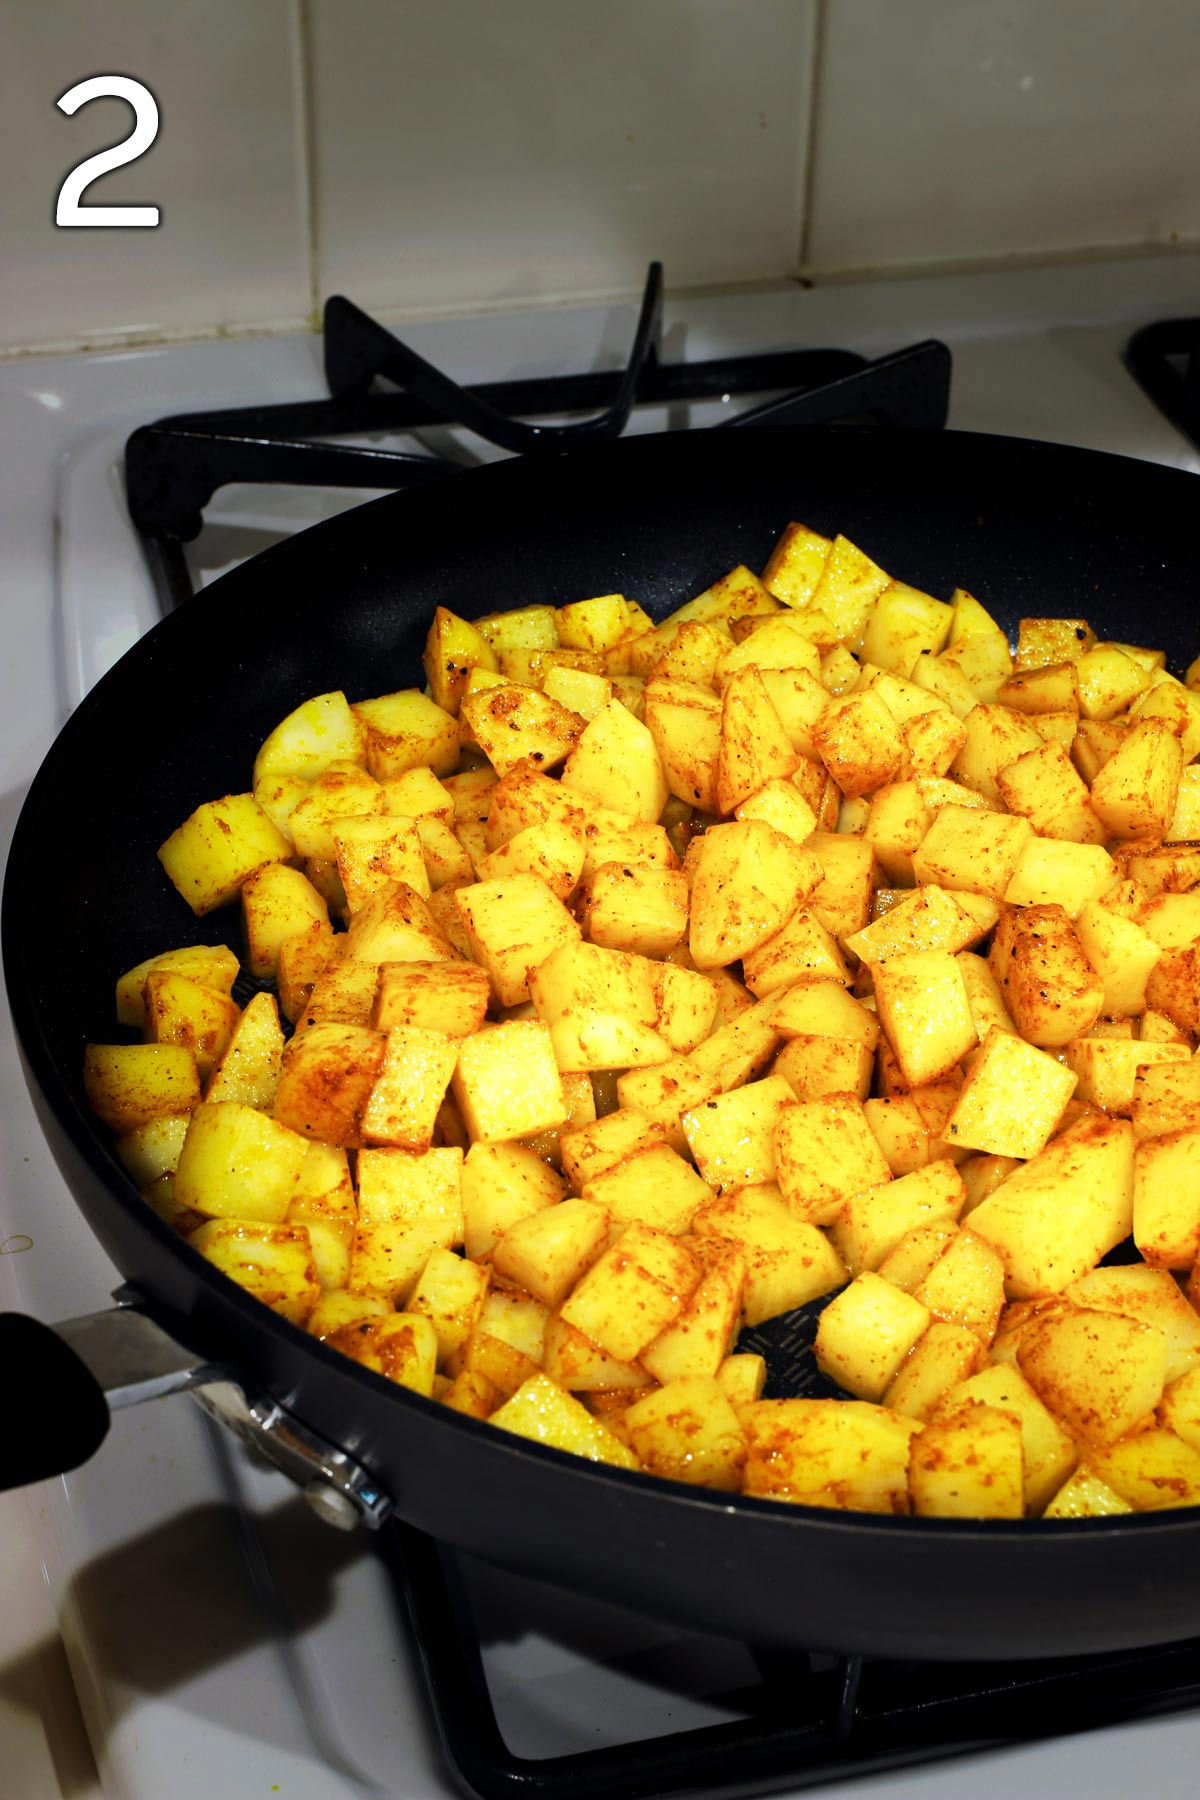 potatoes tossed in oil and spices in skillet.